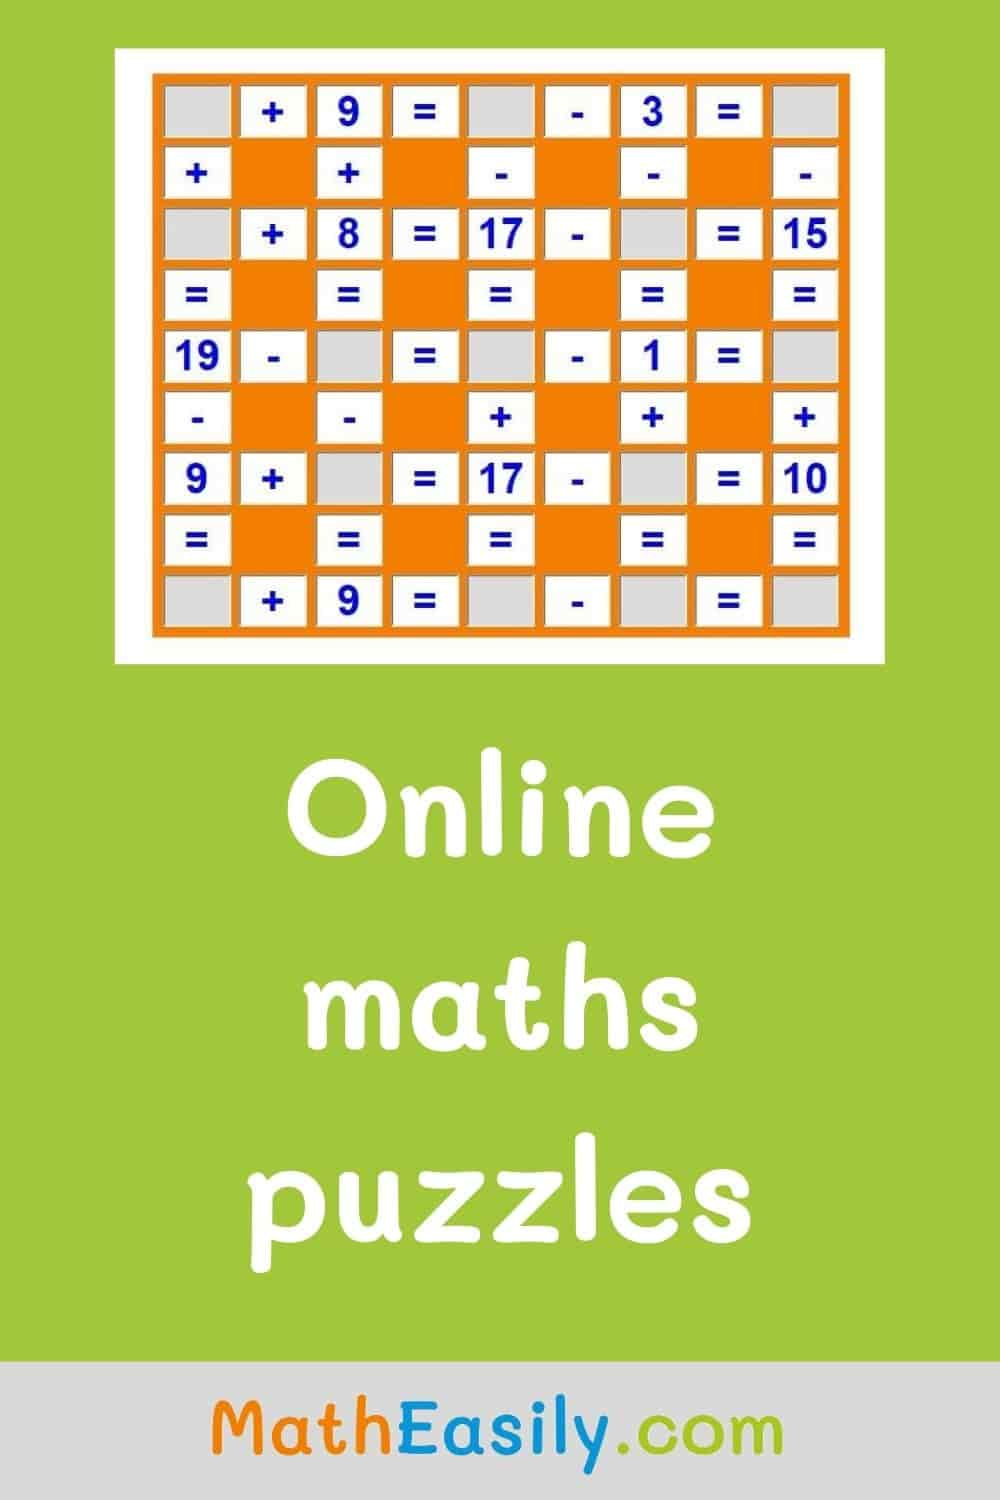 Online maths puzzles for kids